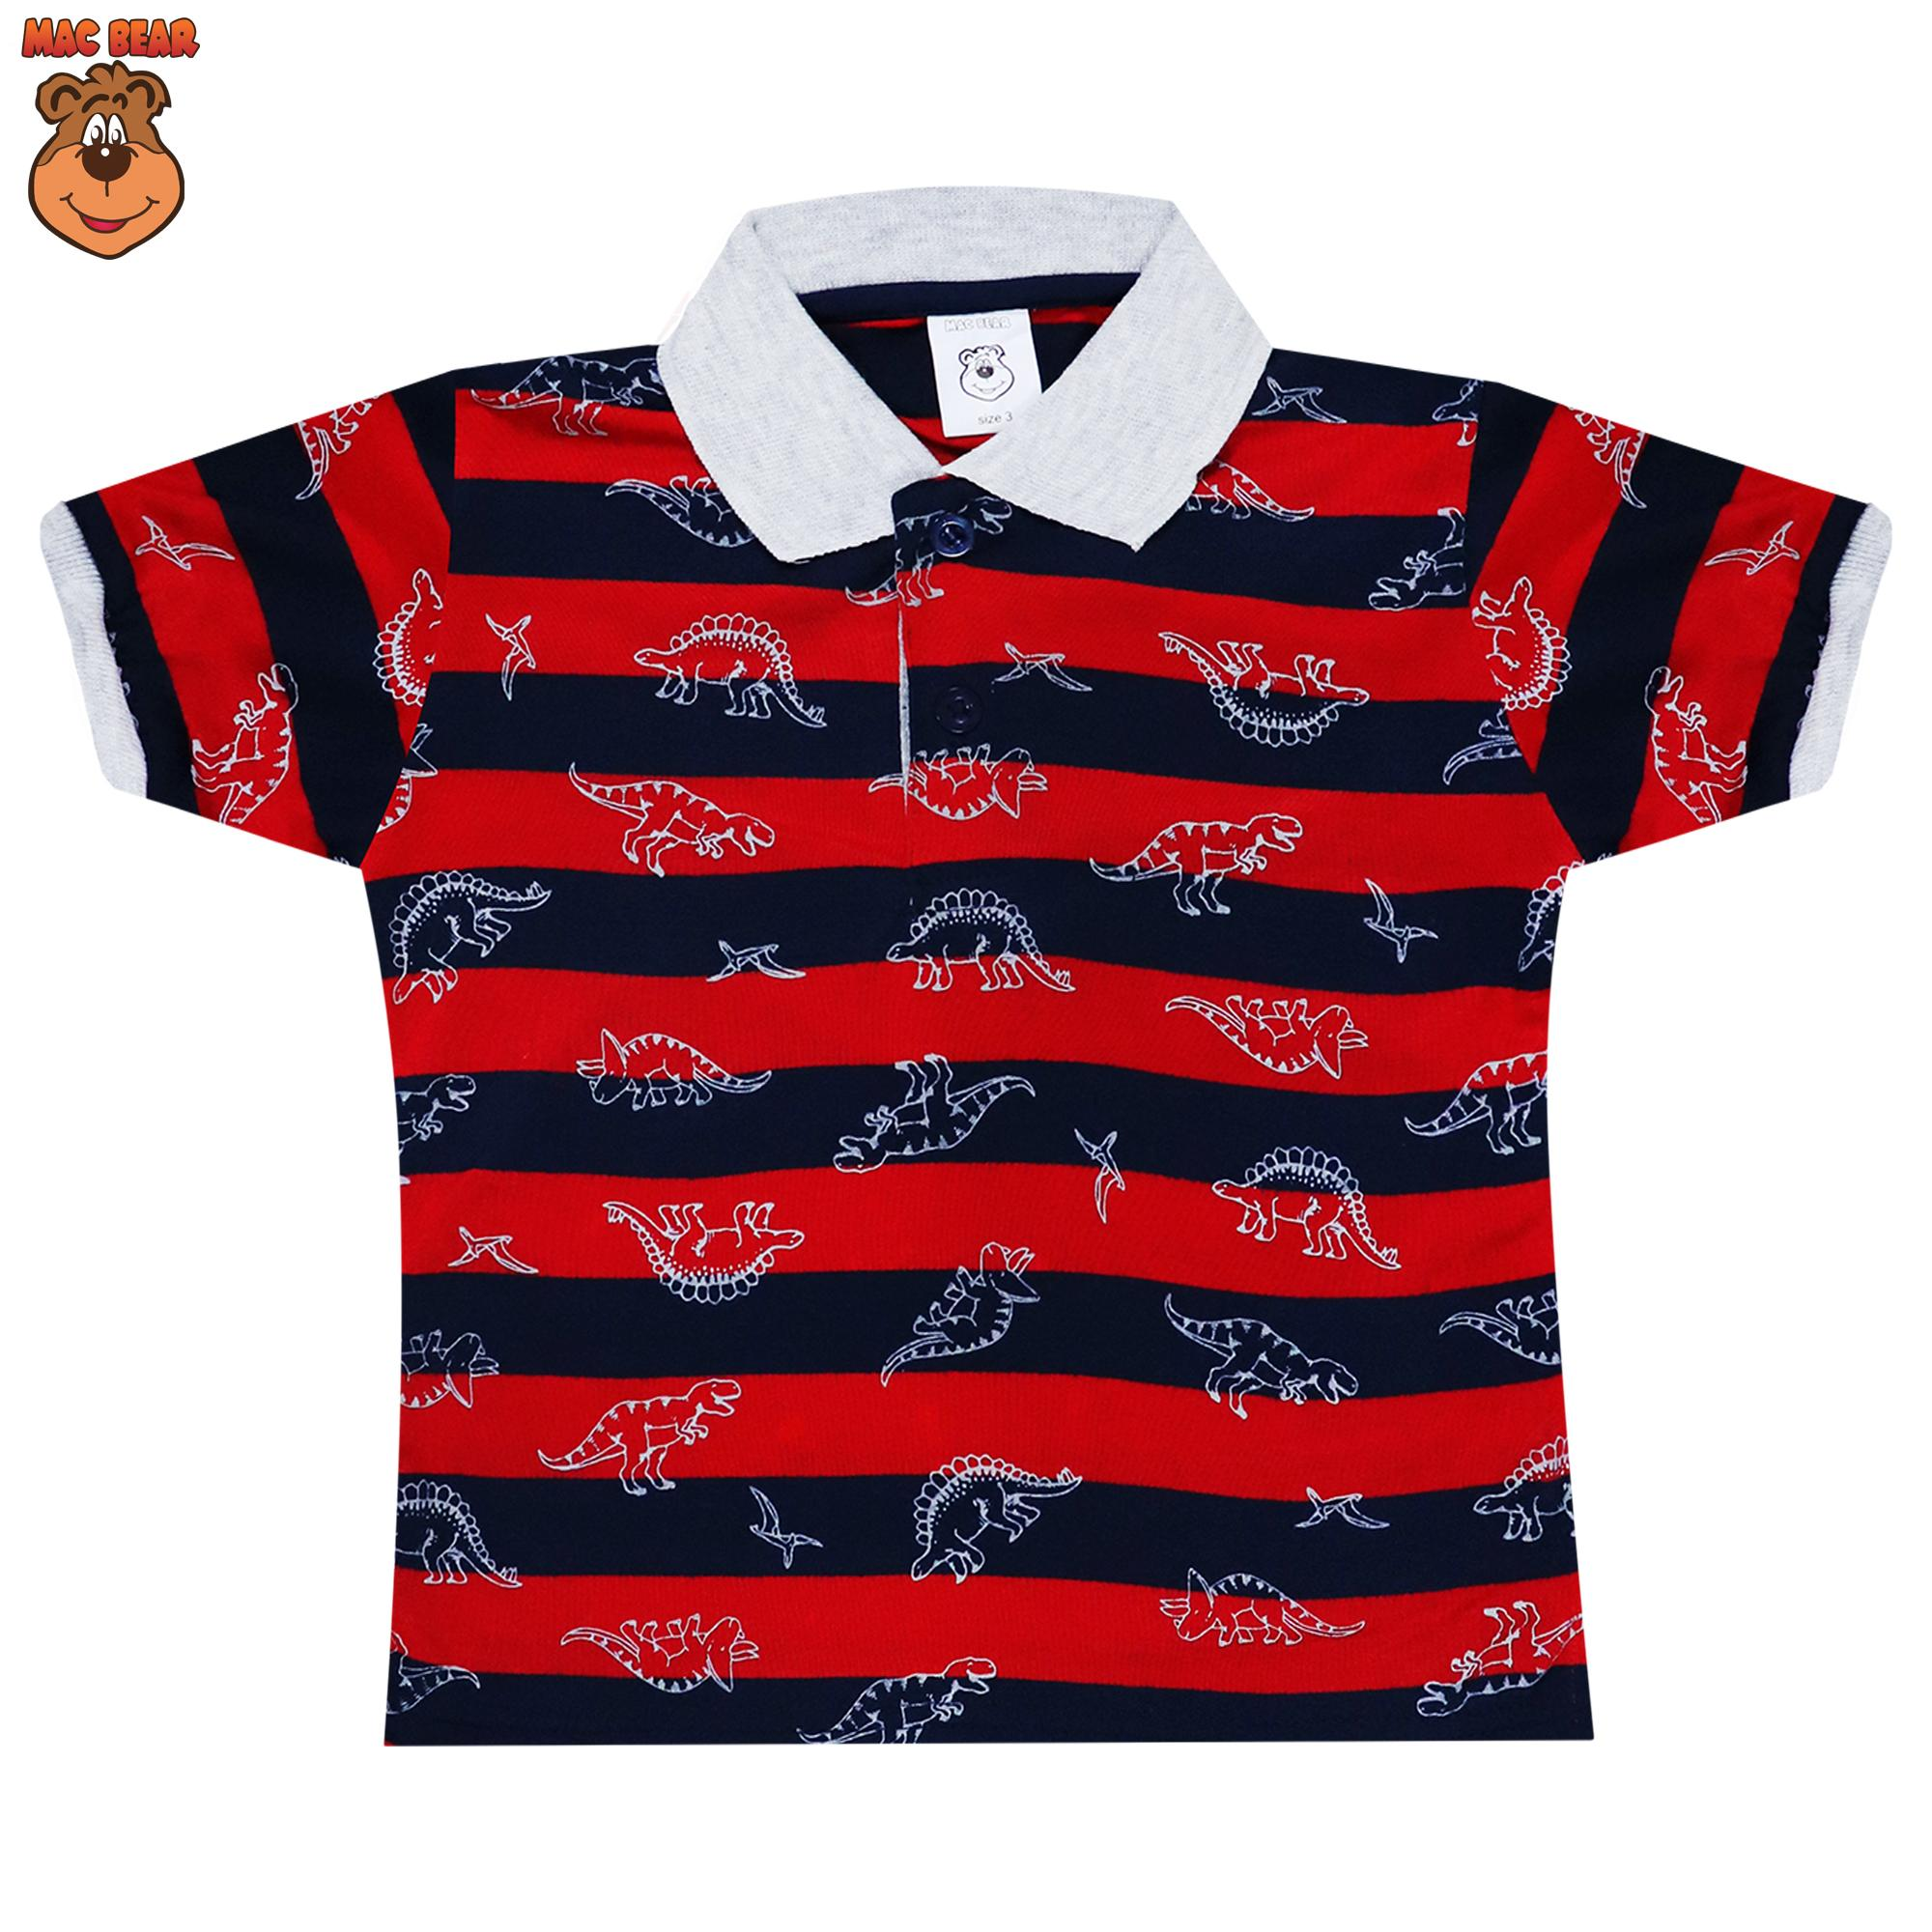 MacBear Baju Anak Dino Polo Shirt Cool Boys